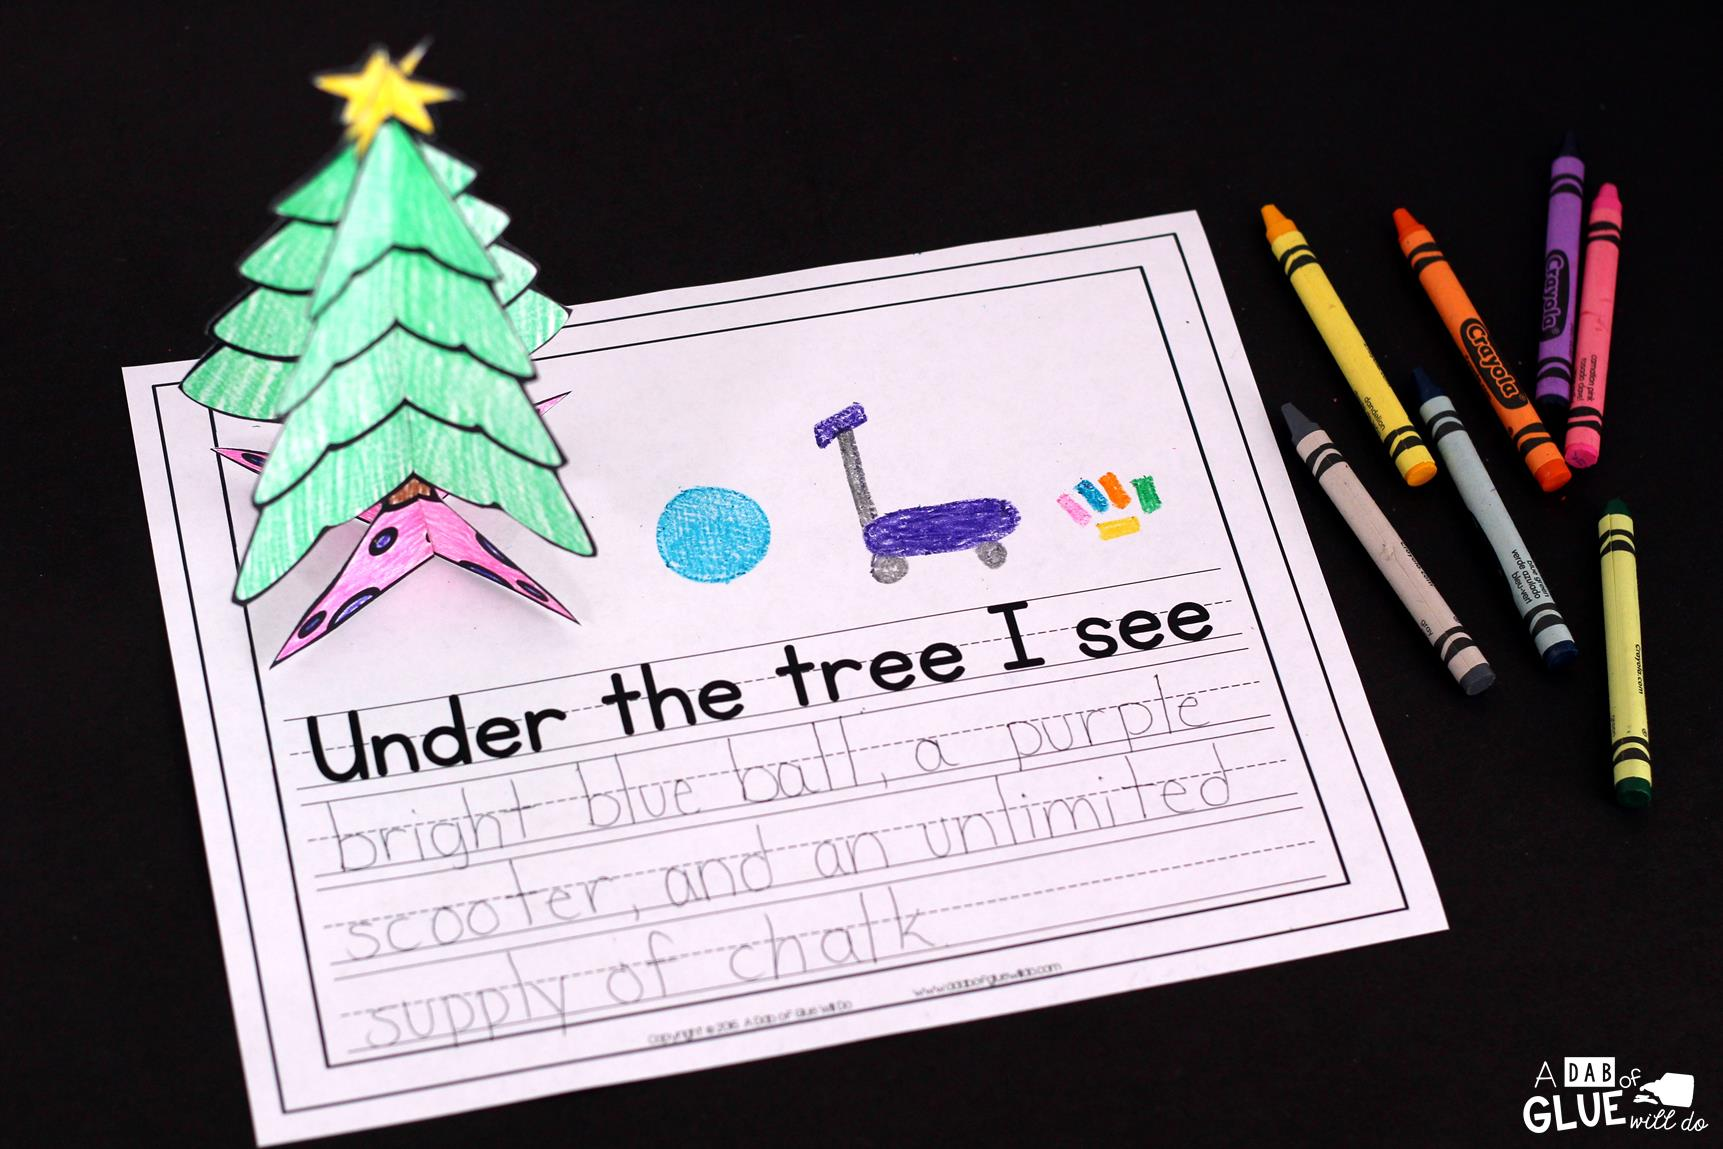 Creative Writing Prompts For Under The Tree